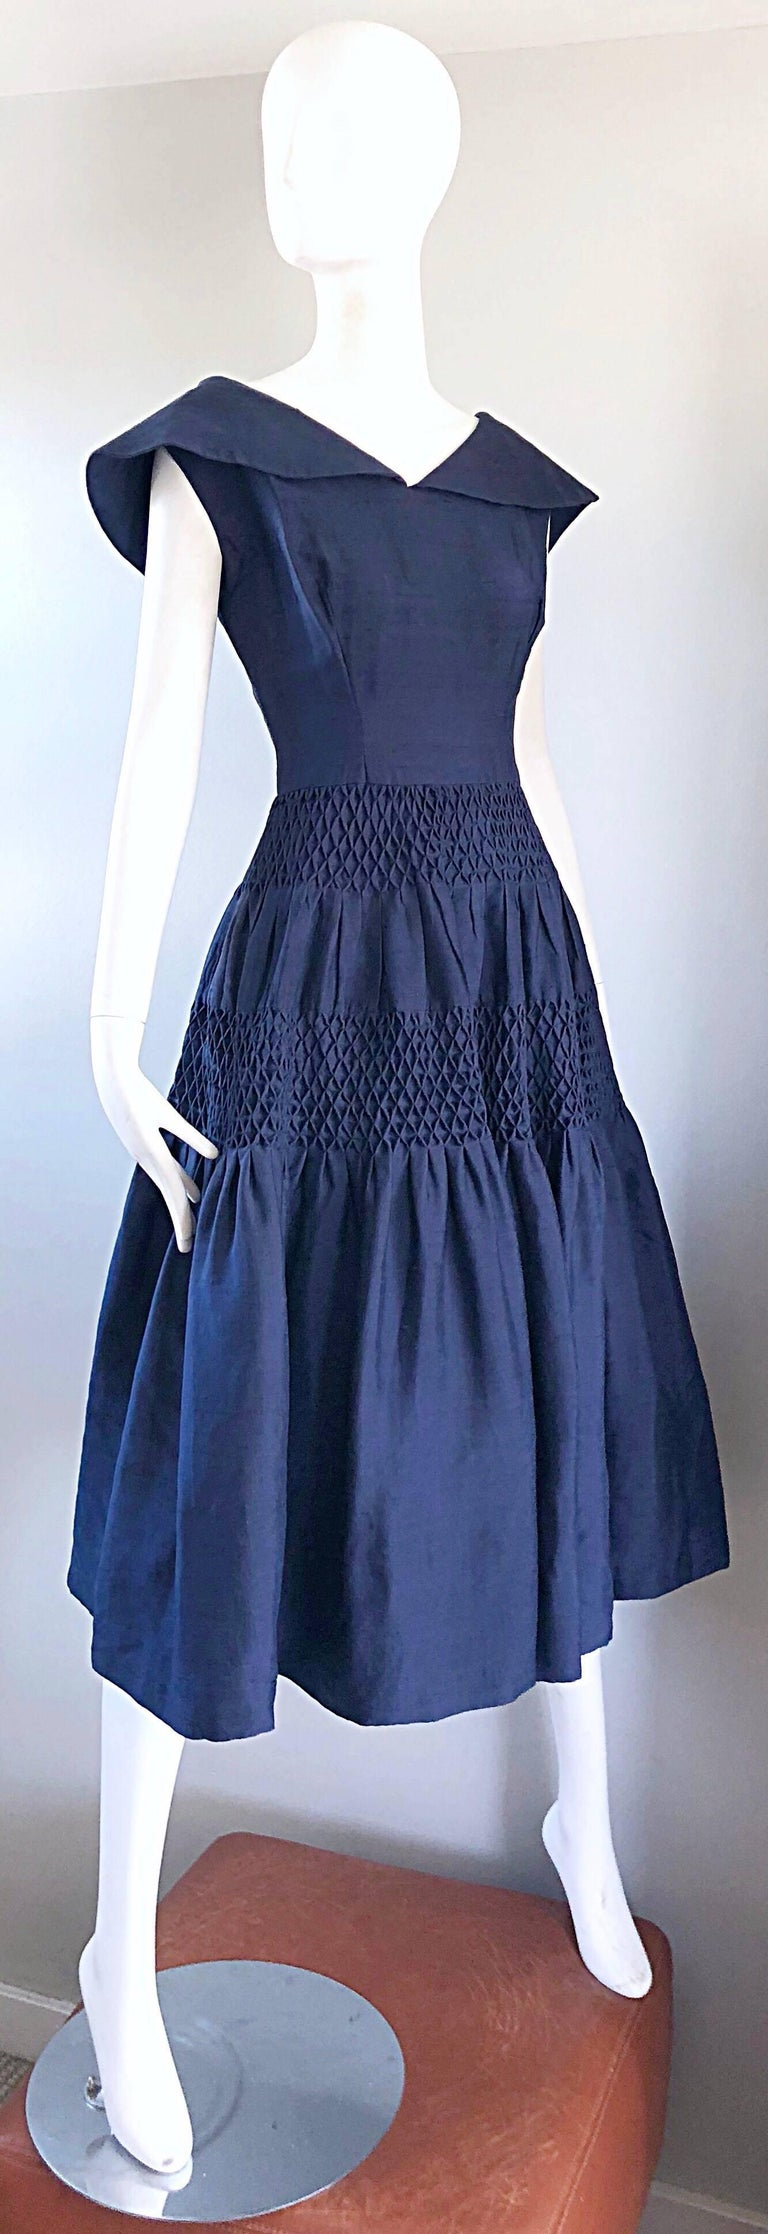 1950s Demi Couture Navy Blue Silk Shantung Vintage 50s Nautical Dress For Sale 5